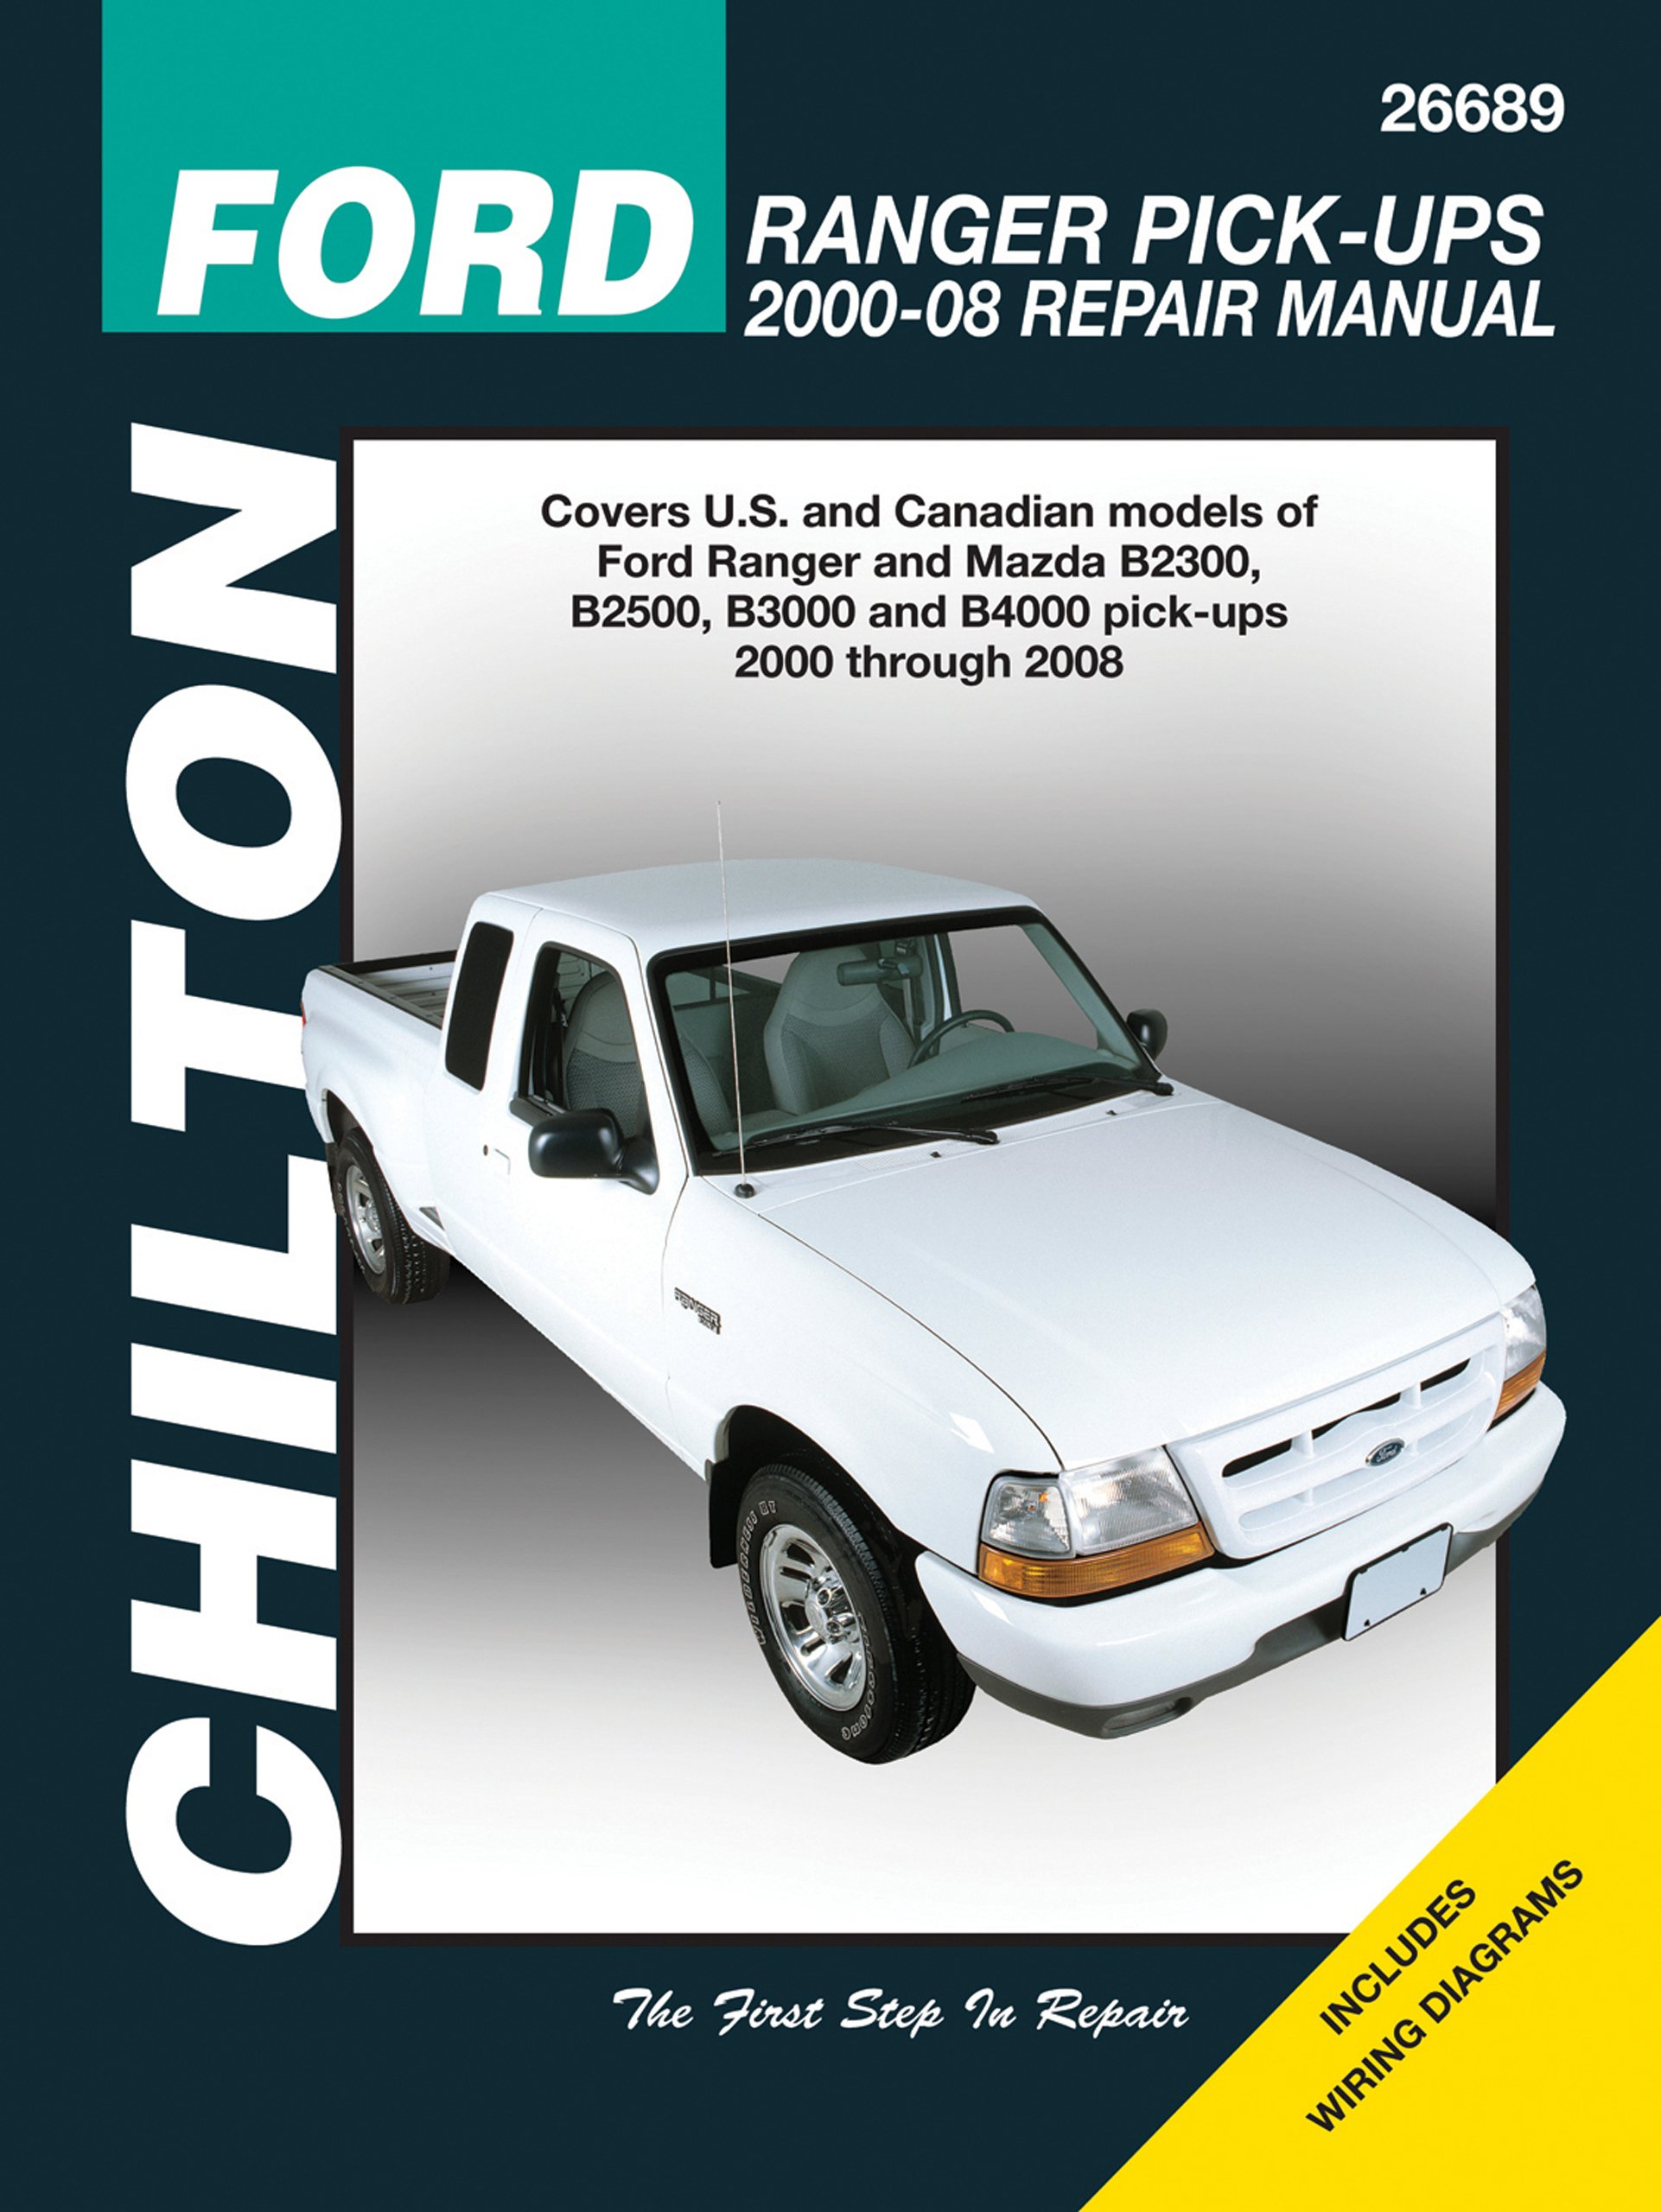 Ford Ranger Pick-Ups Repair Manual (Chilton's Total Car Care Repair Manuals):  Amazon.co.uk: Eric Jorgensen, Alan Ahlstrand: 9781563927522: Books